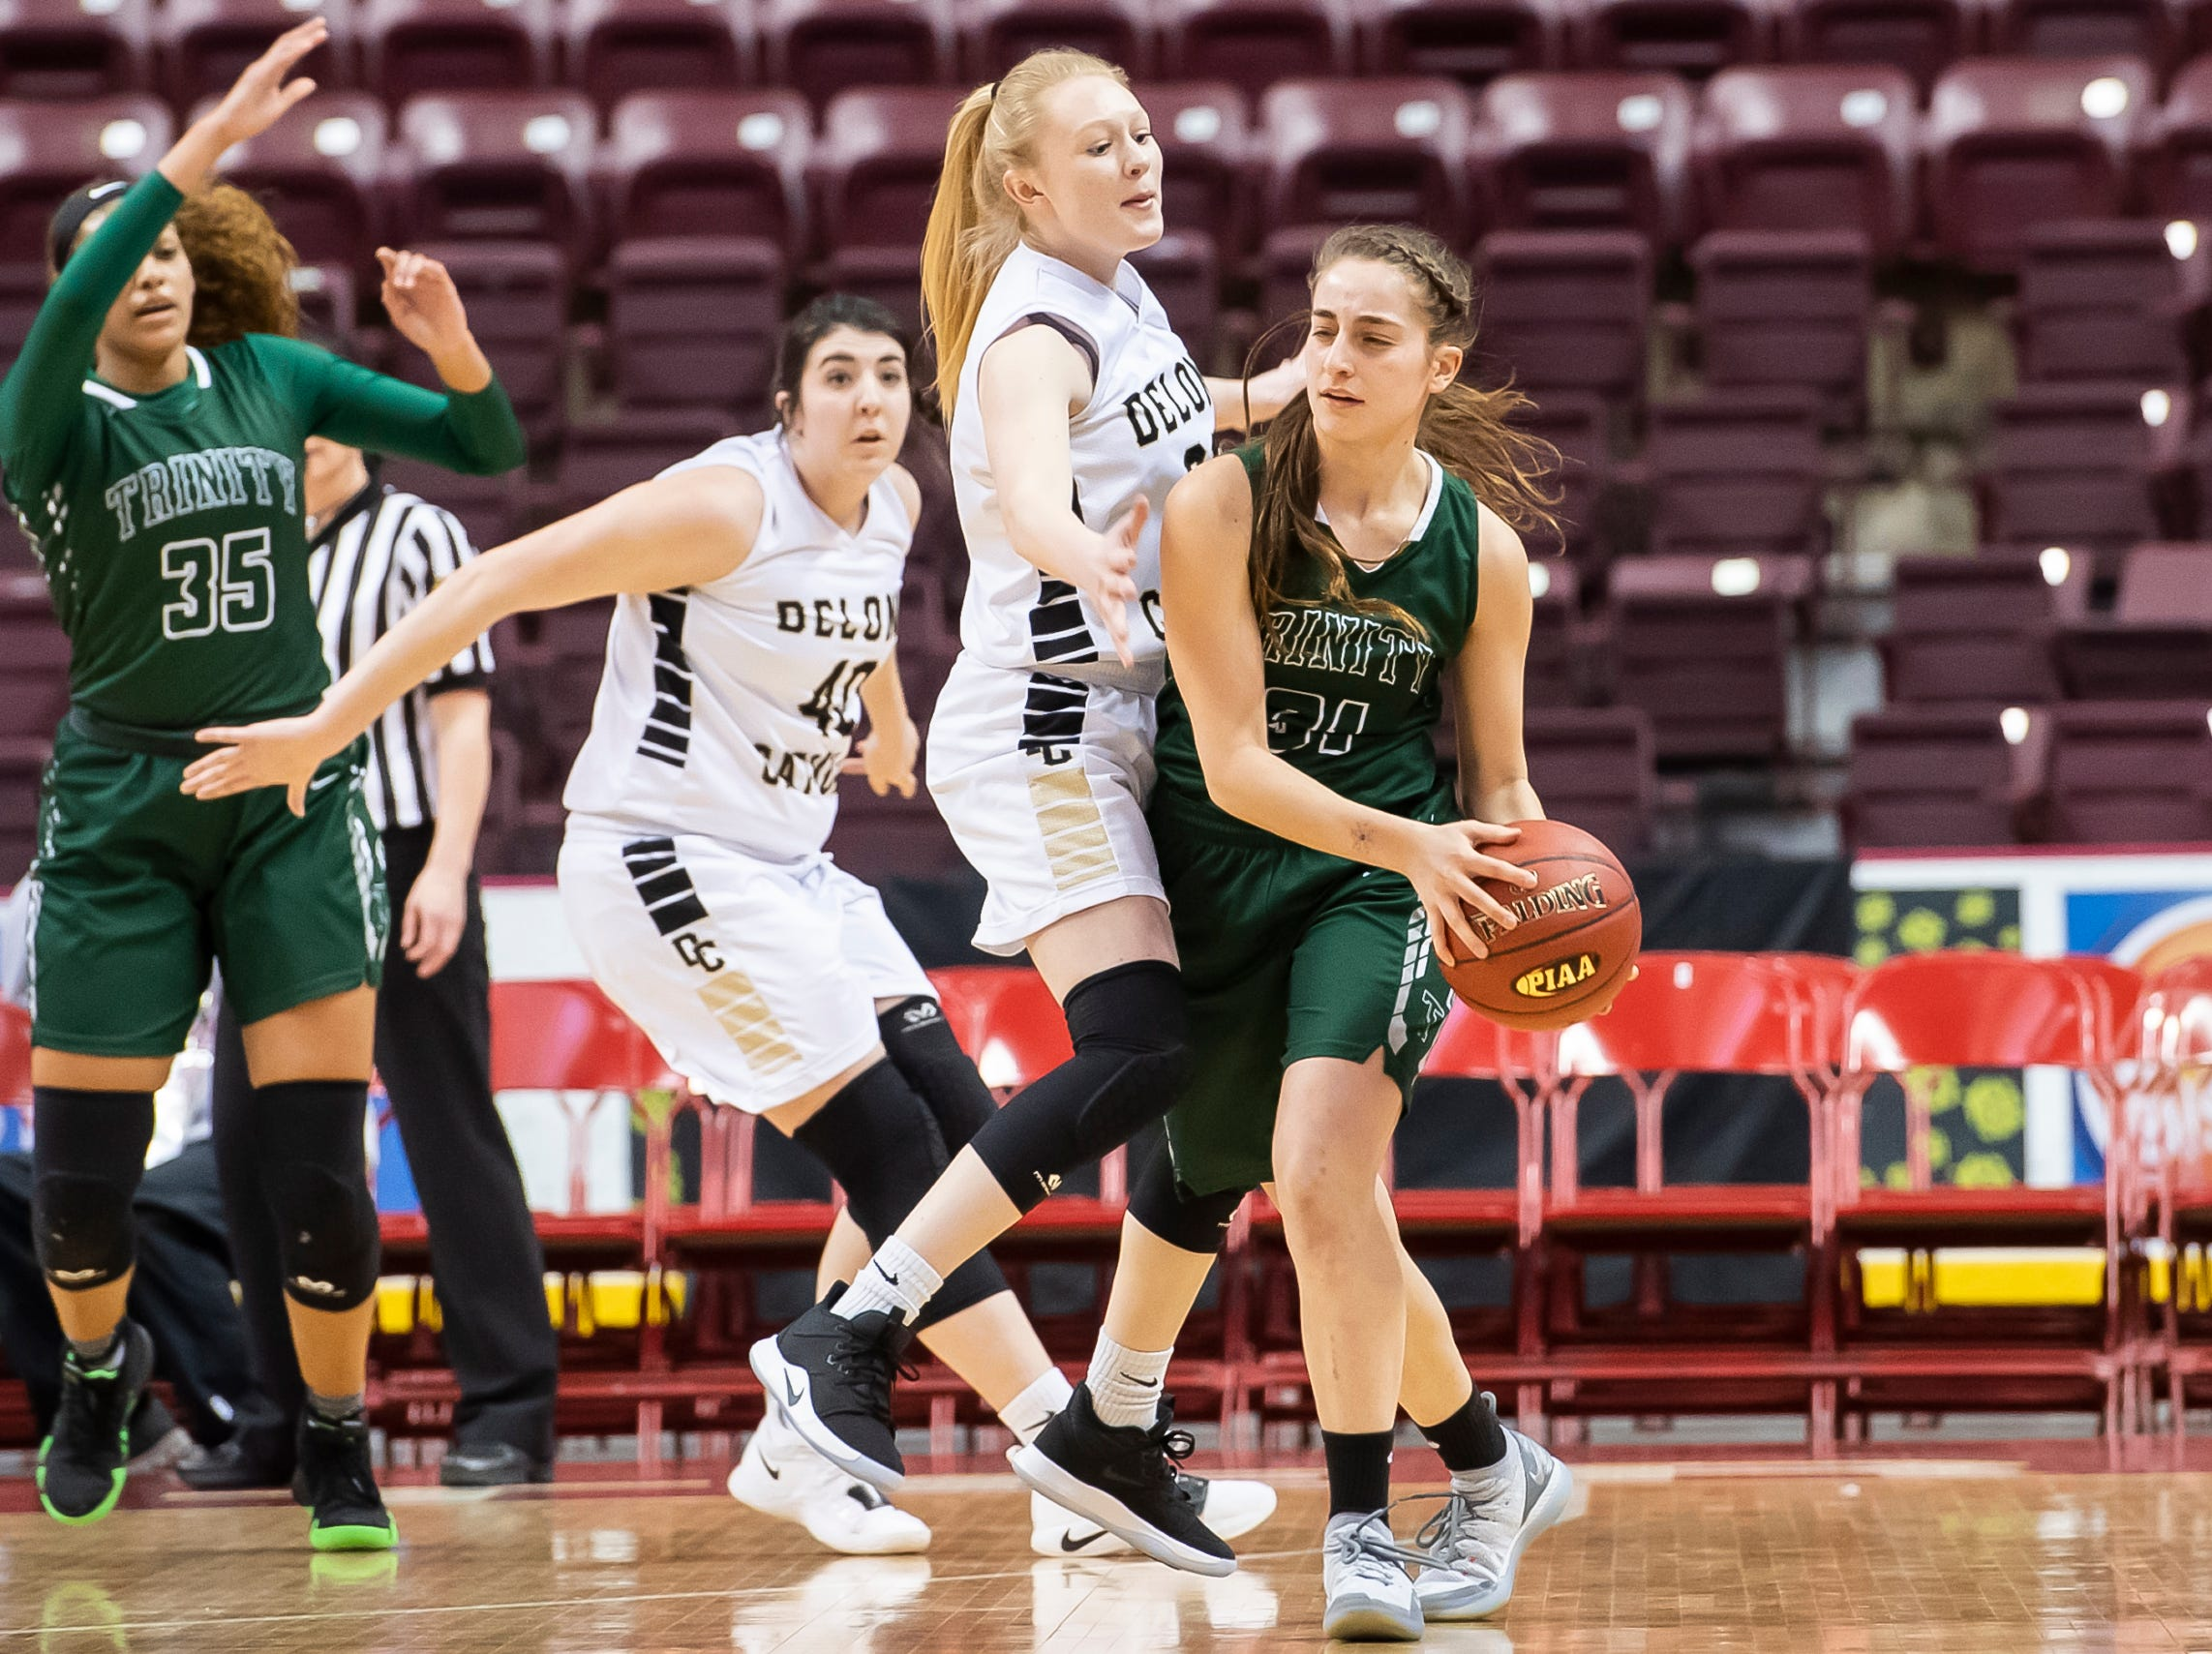 Delone Catholic's Brooke Lawyer pressures Trinity's Braylee Fetterolf during the District 3 3A girls championship game at the Giant Center in Hershey Wednesday, Feb. 27, 2019. The Squirettes fell 44-33.